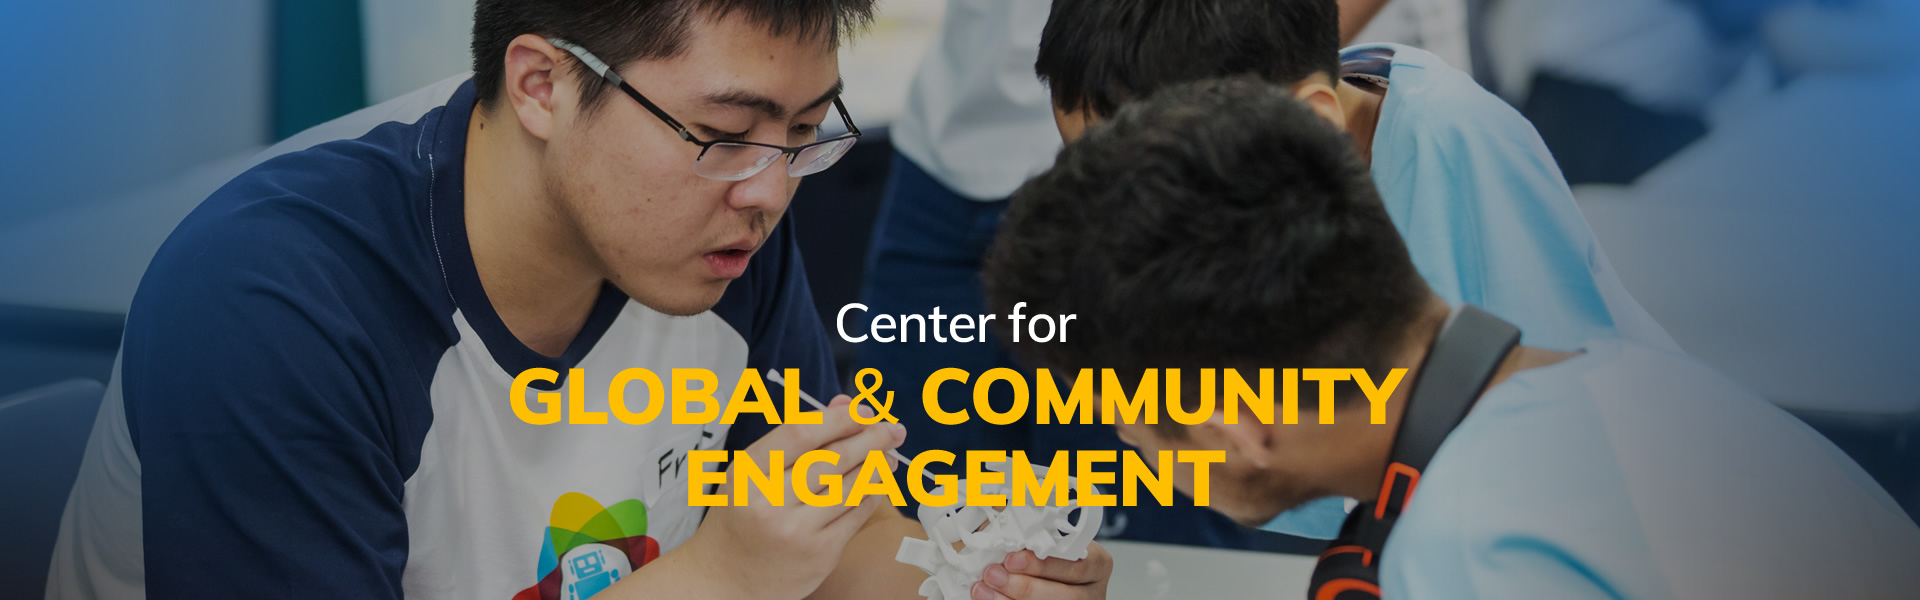 Center for Global & Community Engagement